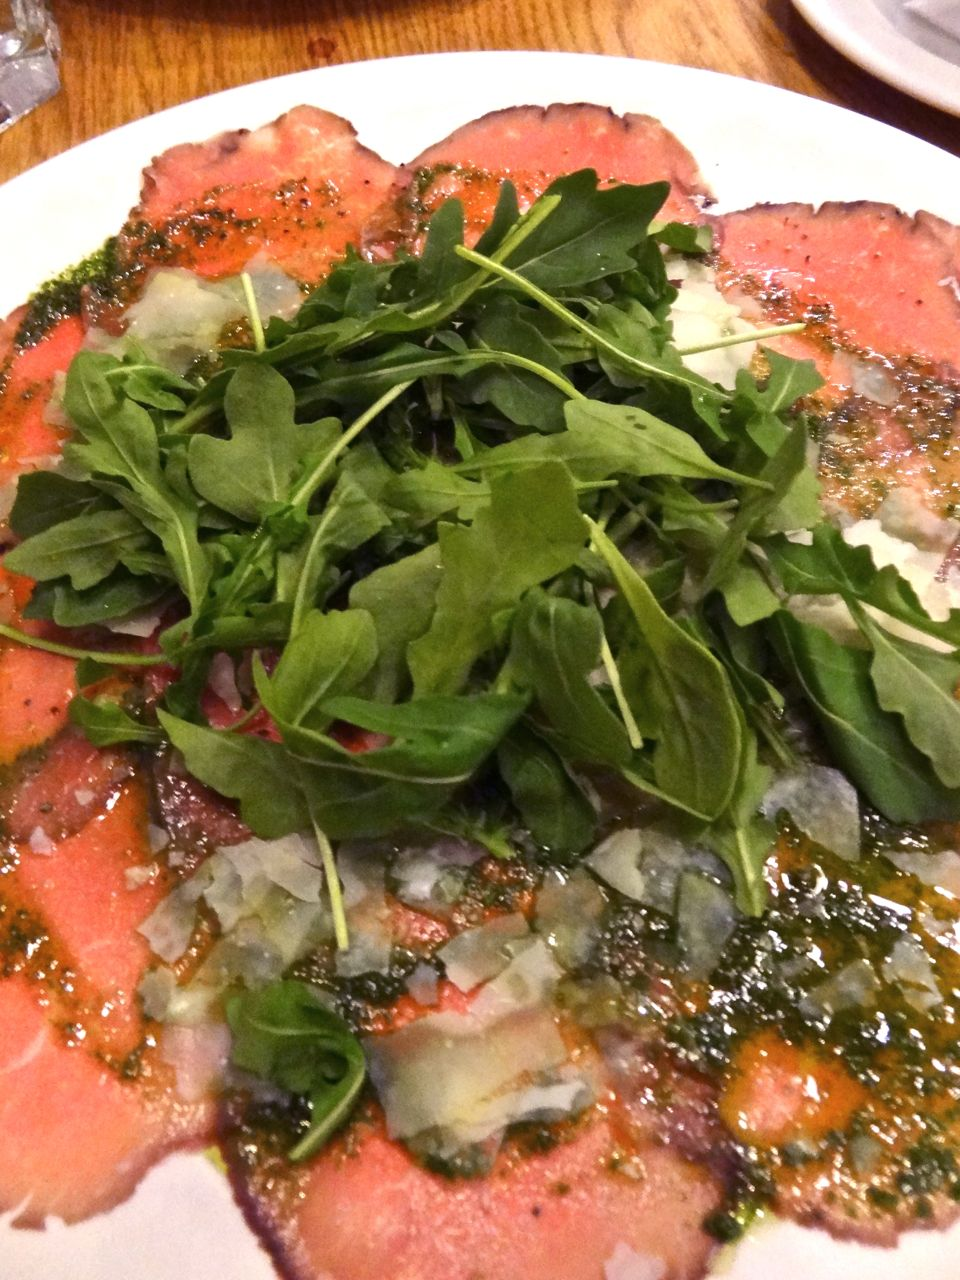 And after...the carpaccio needed a tangle of wild arugula on top...and ...